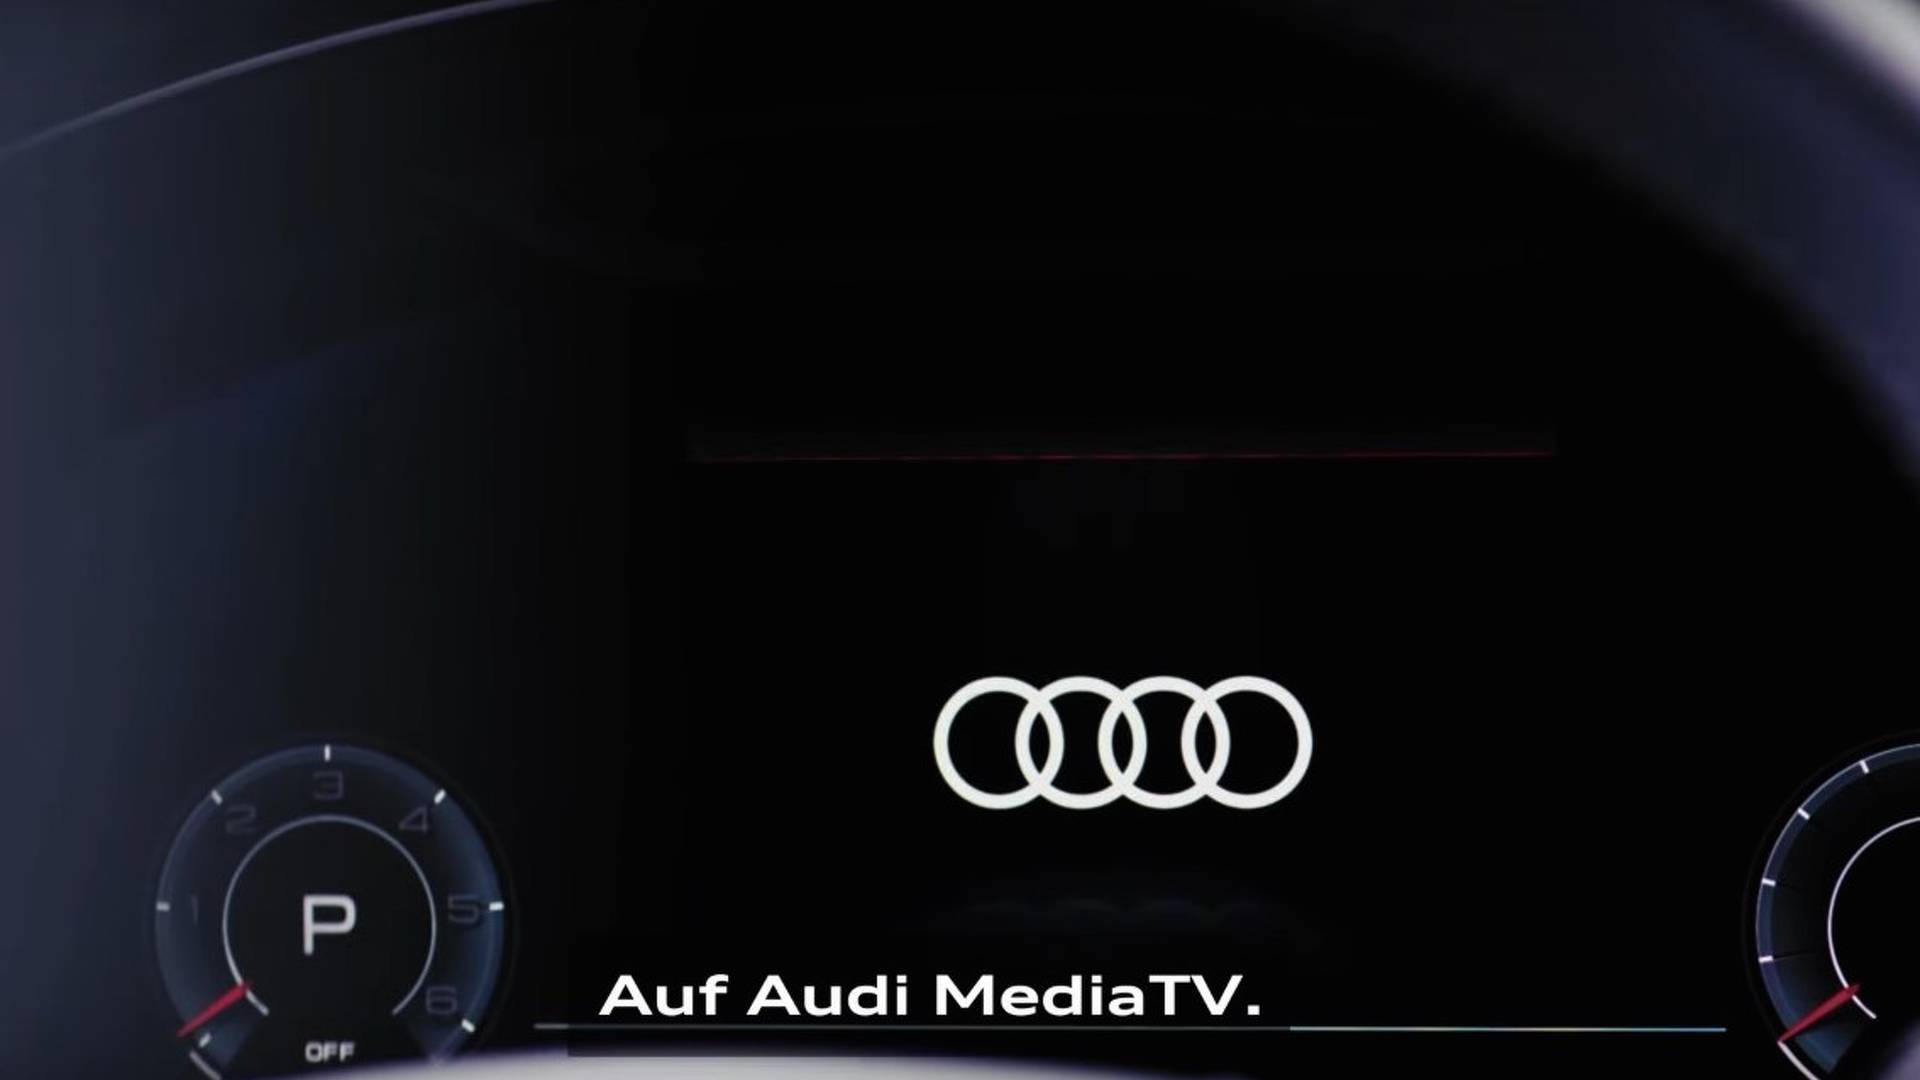 2019 Audi A6 C8 Gets Its S Line Trim On In New Video Teaser